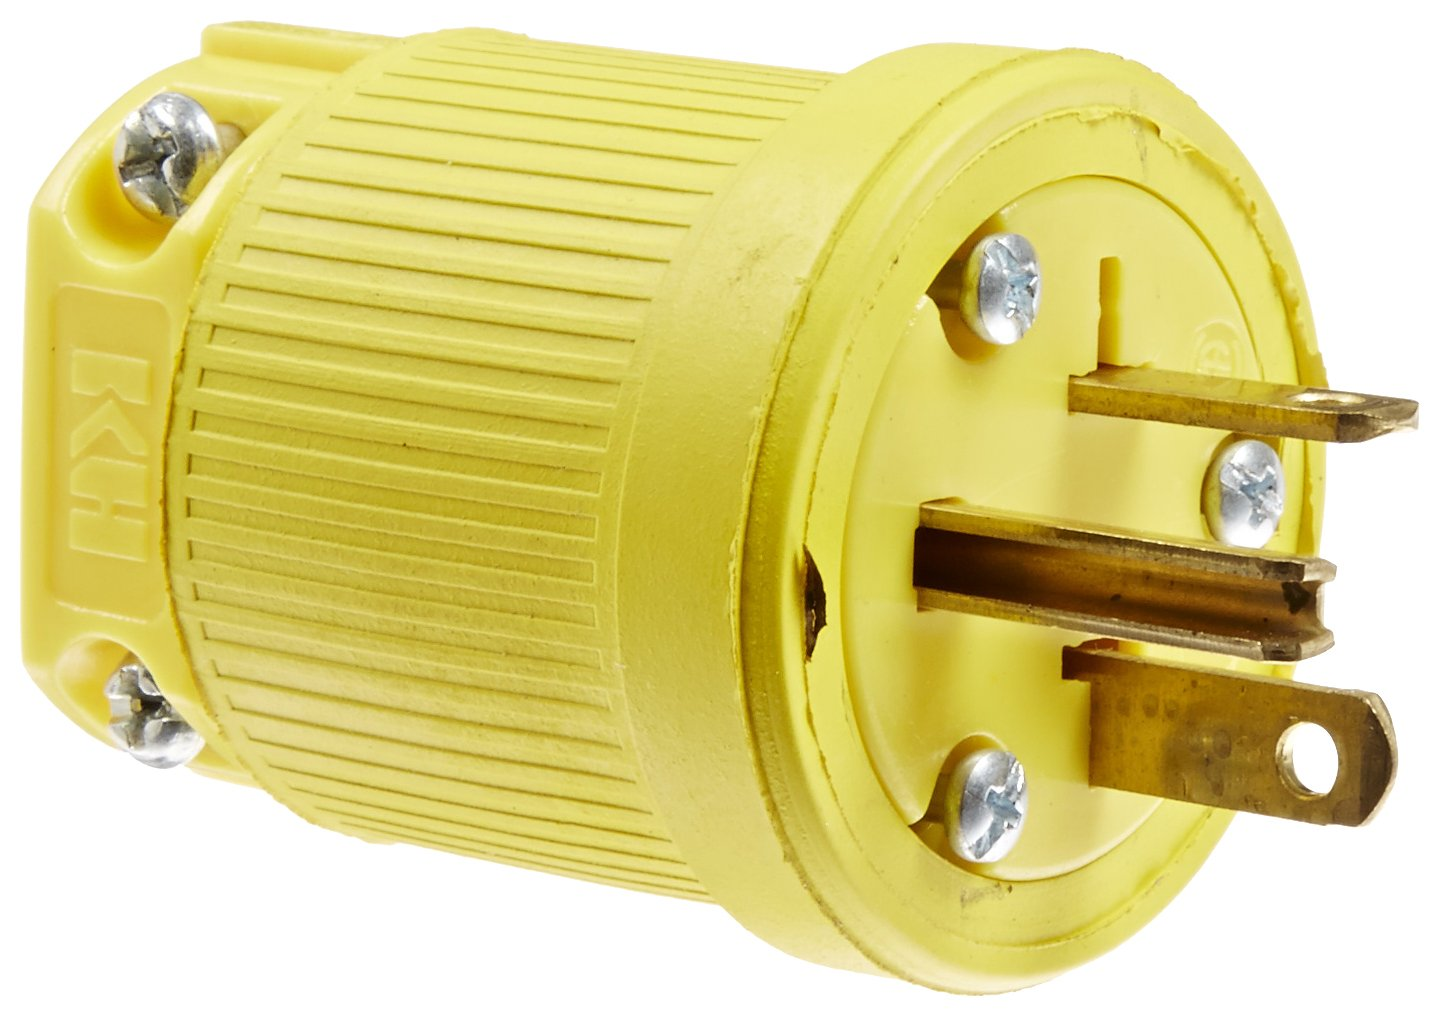 KH Industries P520DF Rubber/Polycarbonate Rewireable Flip Seal Straight Blade Plug, 2 Pole/3 Wire, 20 amps, 125V AC, Yellow